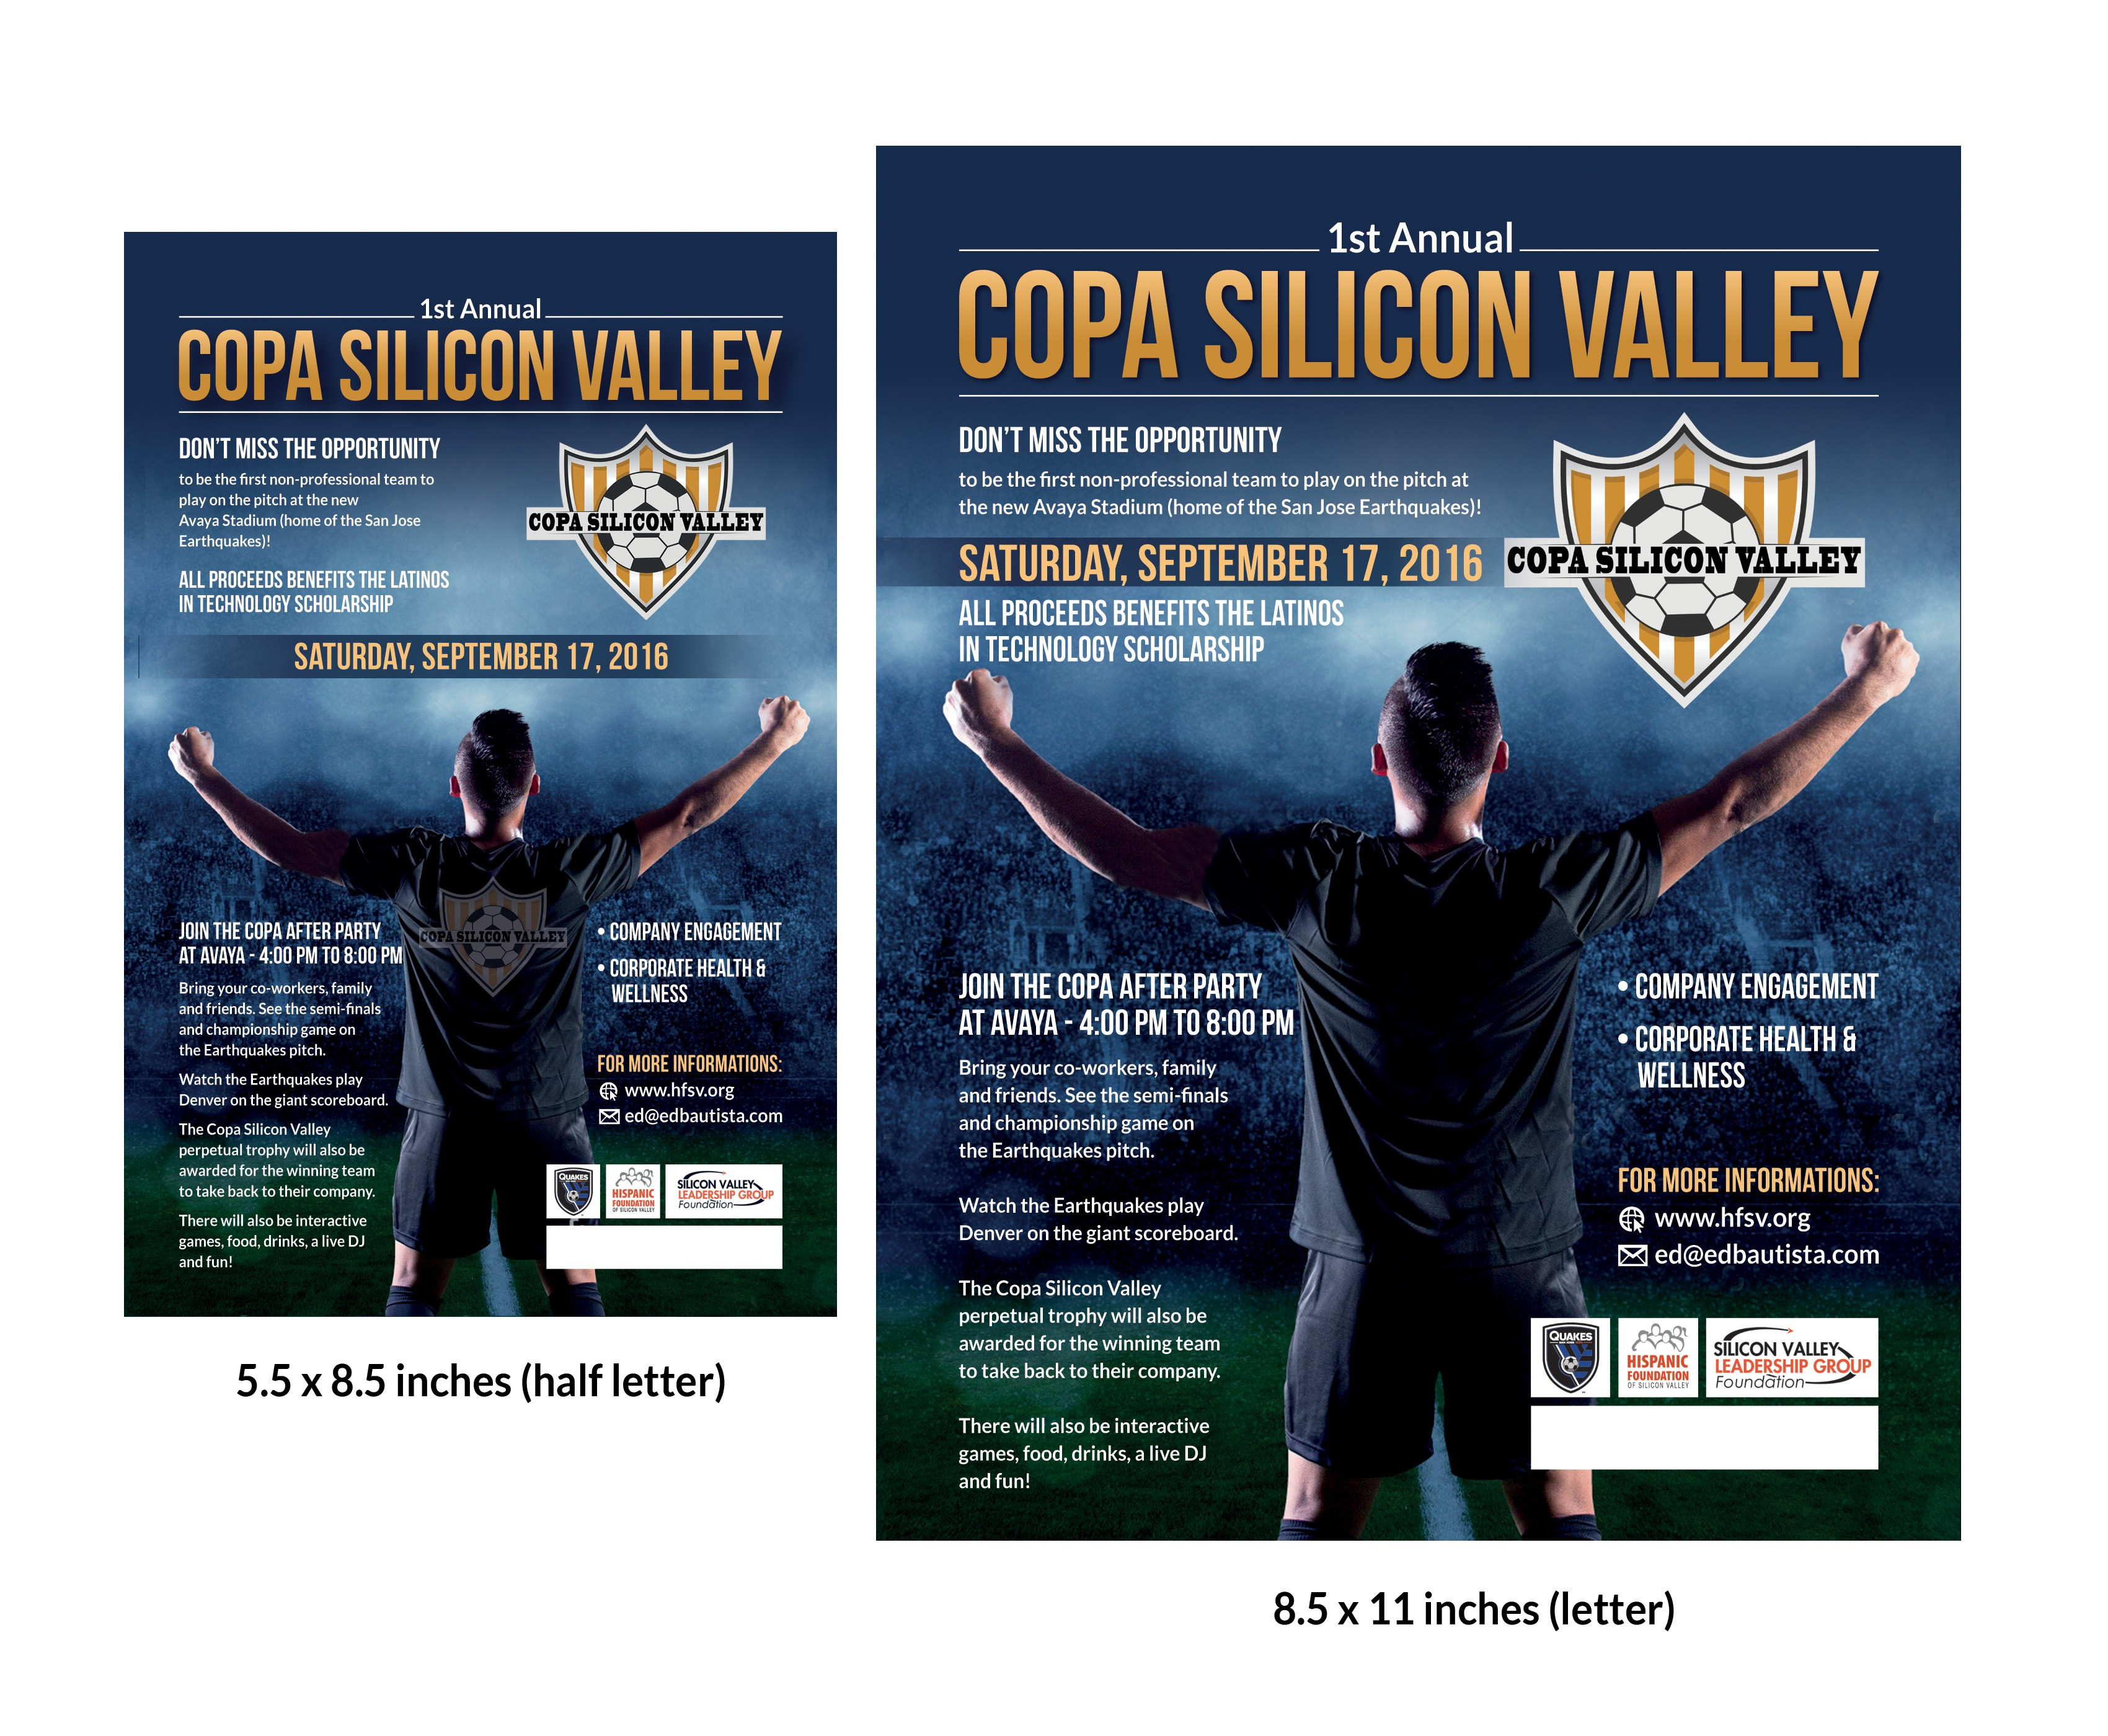 Design A Flyer For Copa Silicon Valley